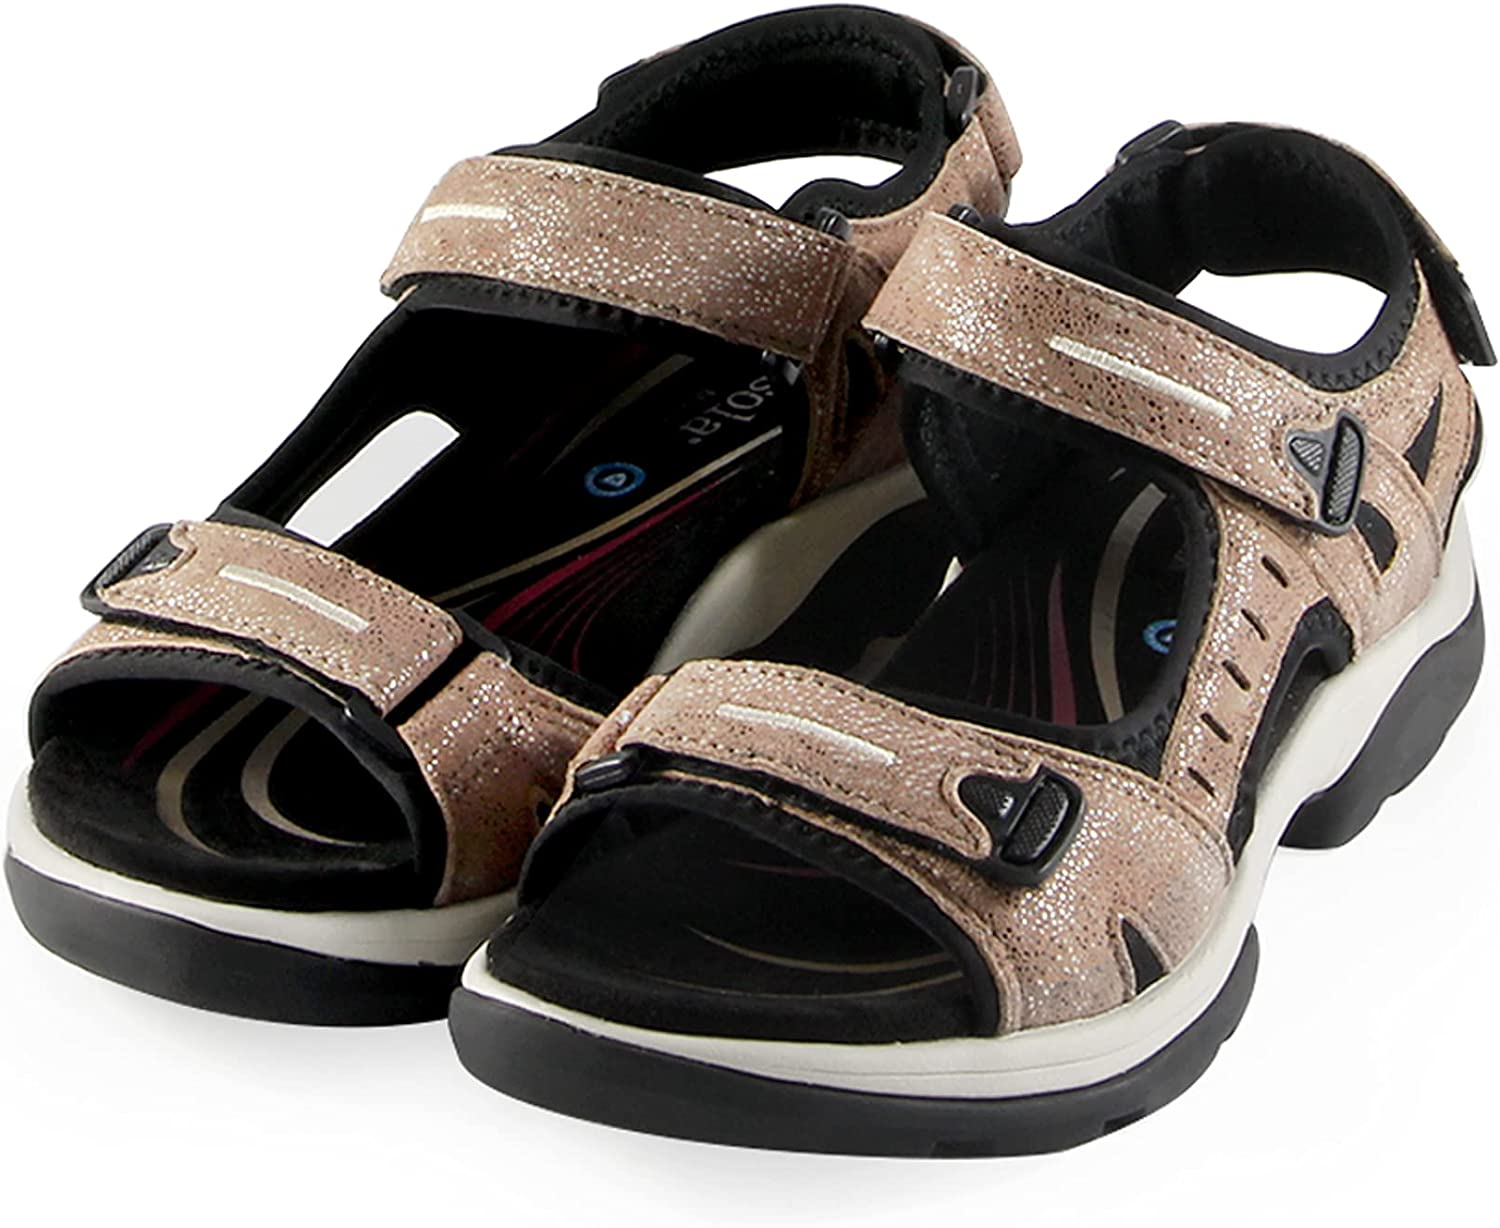 Bussola Hiking Sandals for Women Athletic Sport Outdoor Offroad Sandals Bordeaux Leather Lightweight Walking Shoes (Sand) EU40